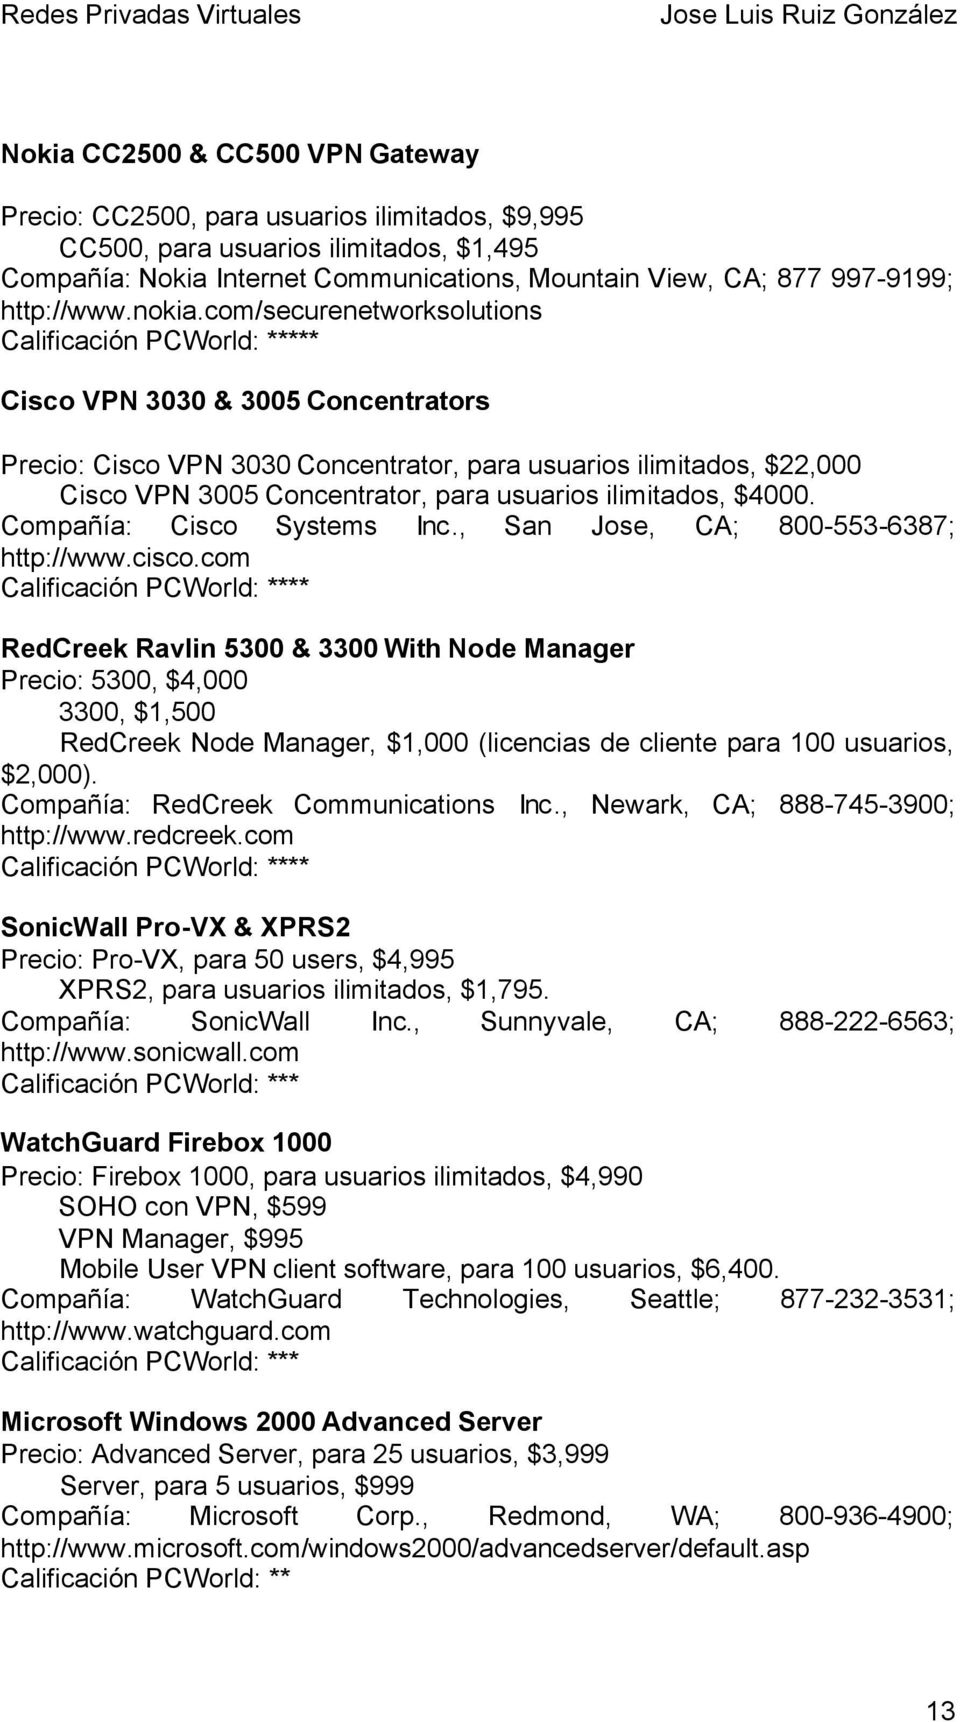 com/securenetworksolutions Calificación PCWorld: ***** Cisco VPN 3030 & 3005 Concentrators Precio: Cisco VPN 3030 Concentrator, para usuarios ilimitados, $22,000 Cisco VPN 3005 Concentrator, para